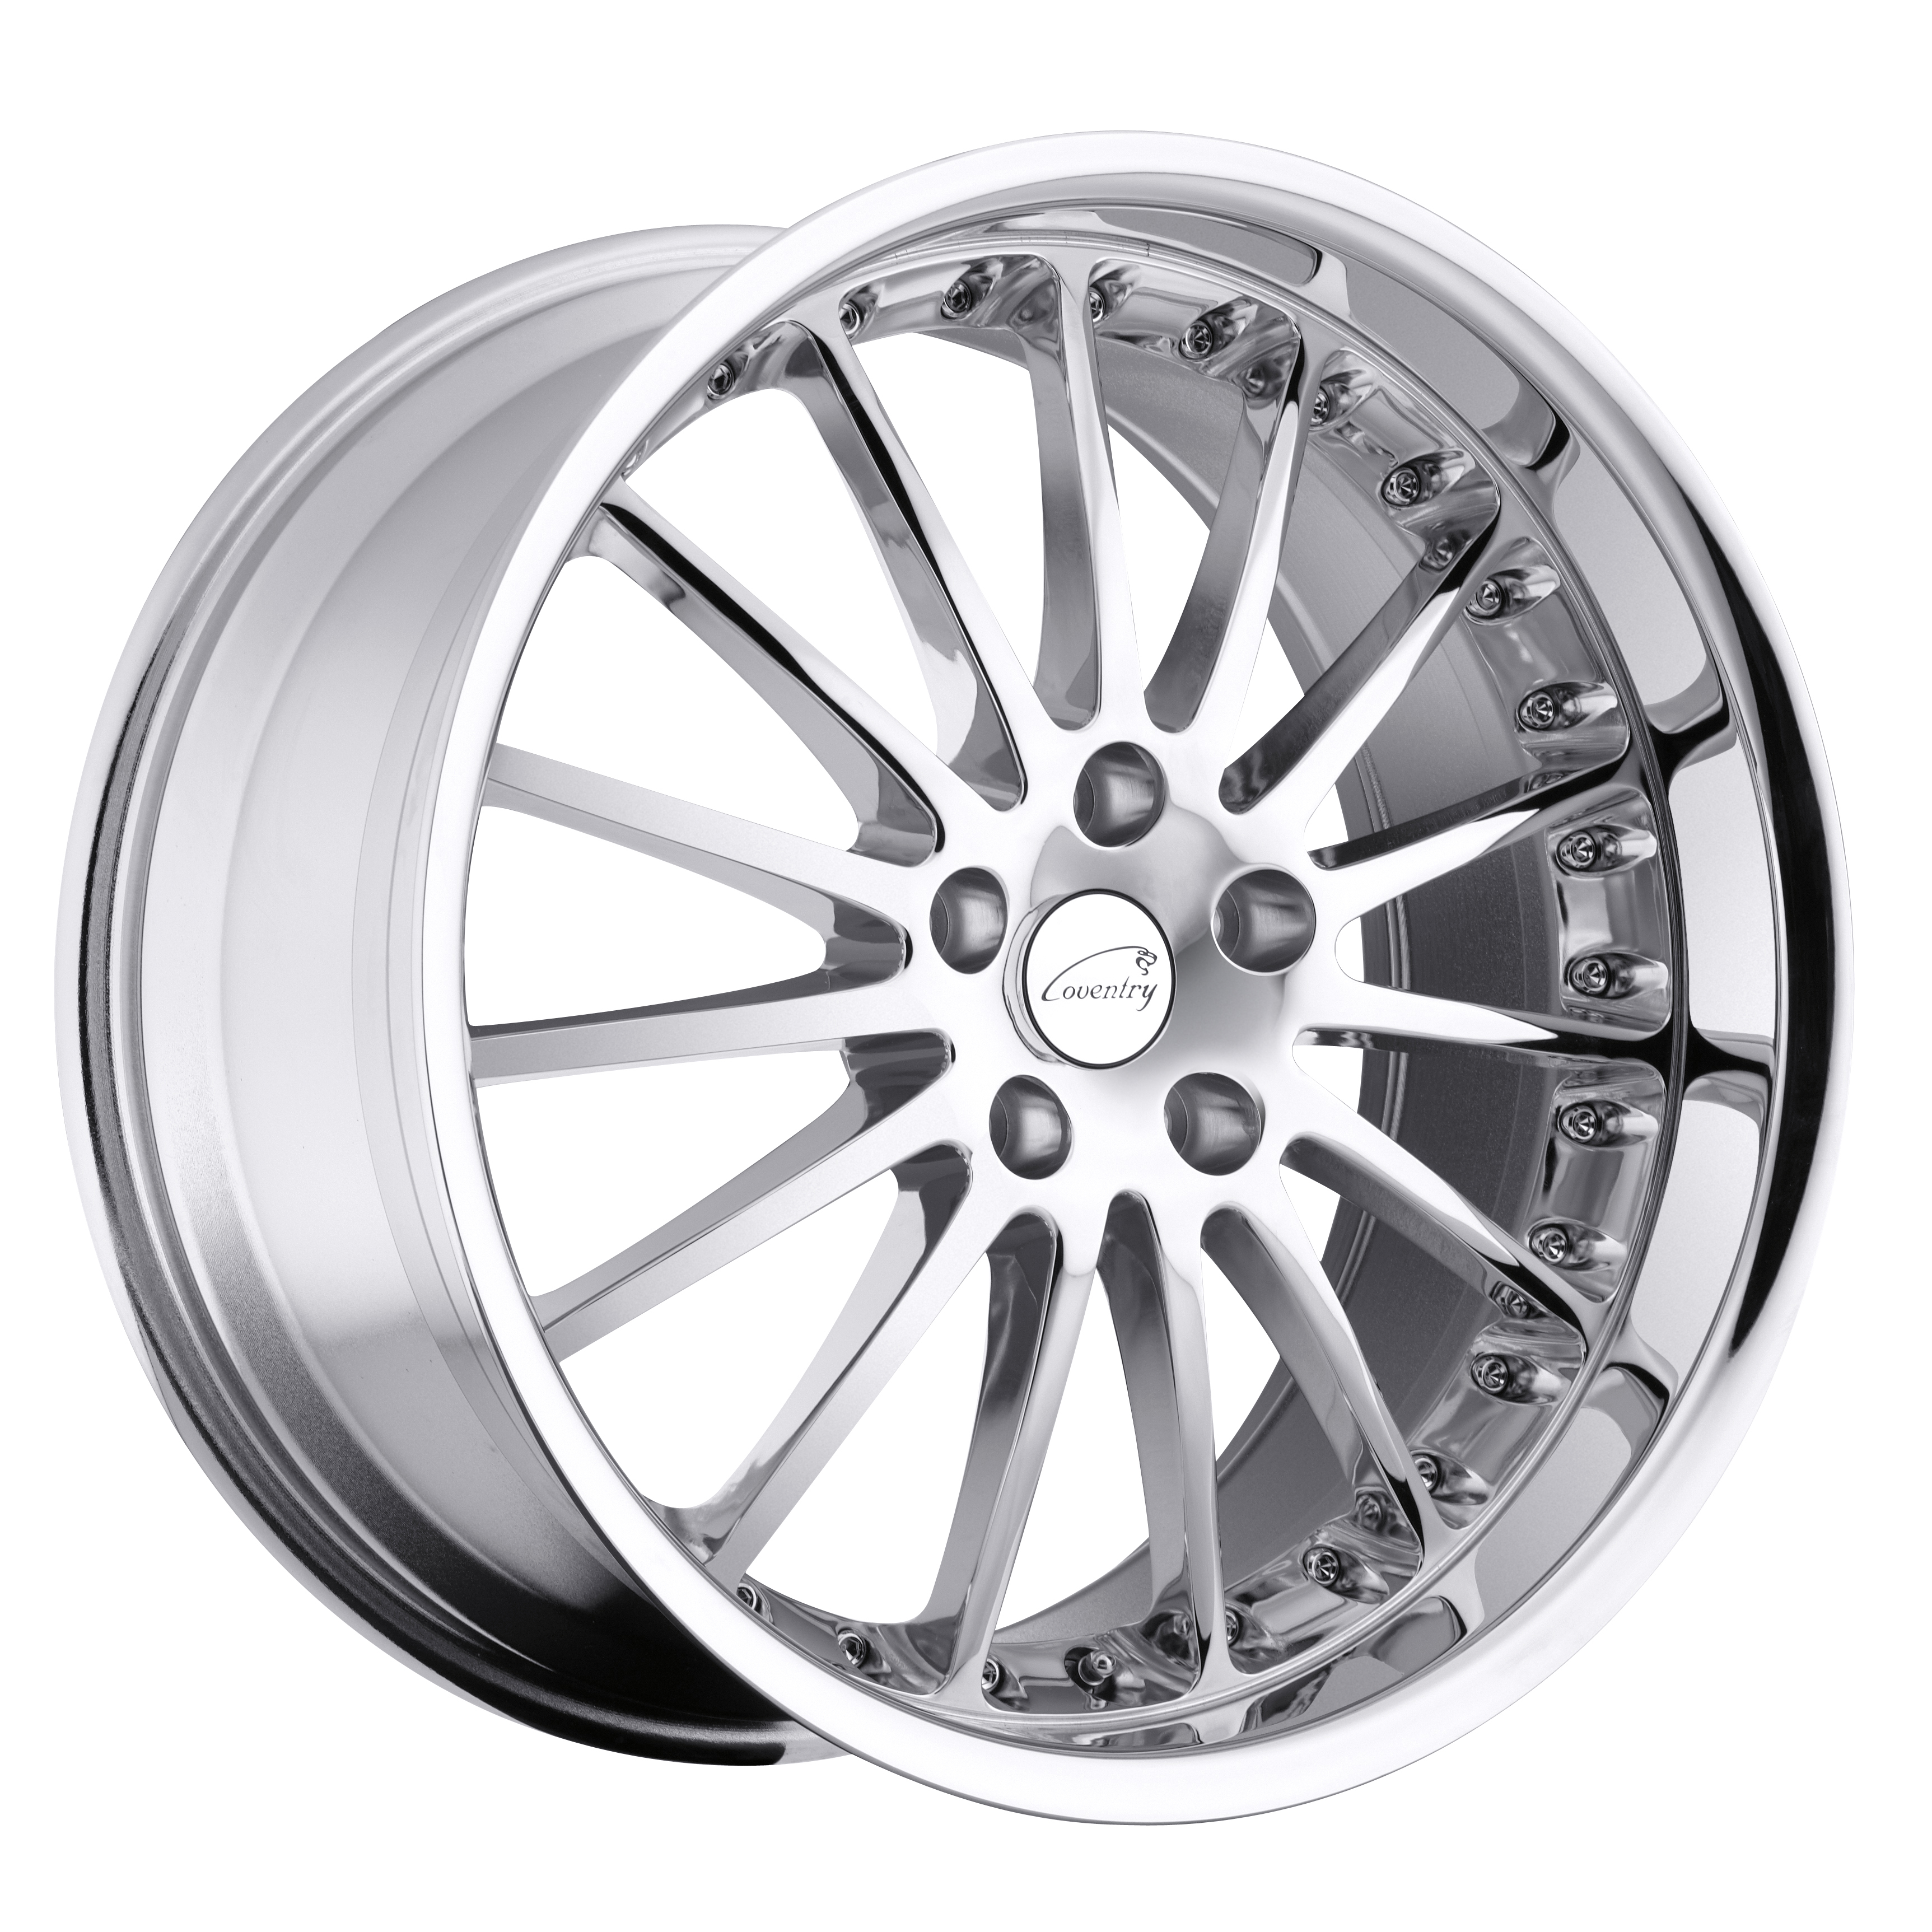 wheel inch jaguar manufacturers at com alibaba and car replica aftermarket alloy rims showroom suppliers